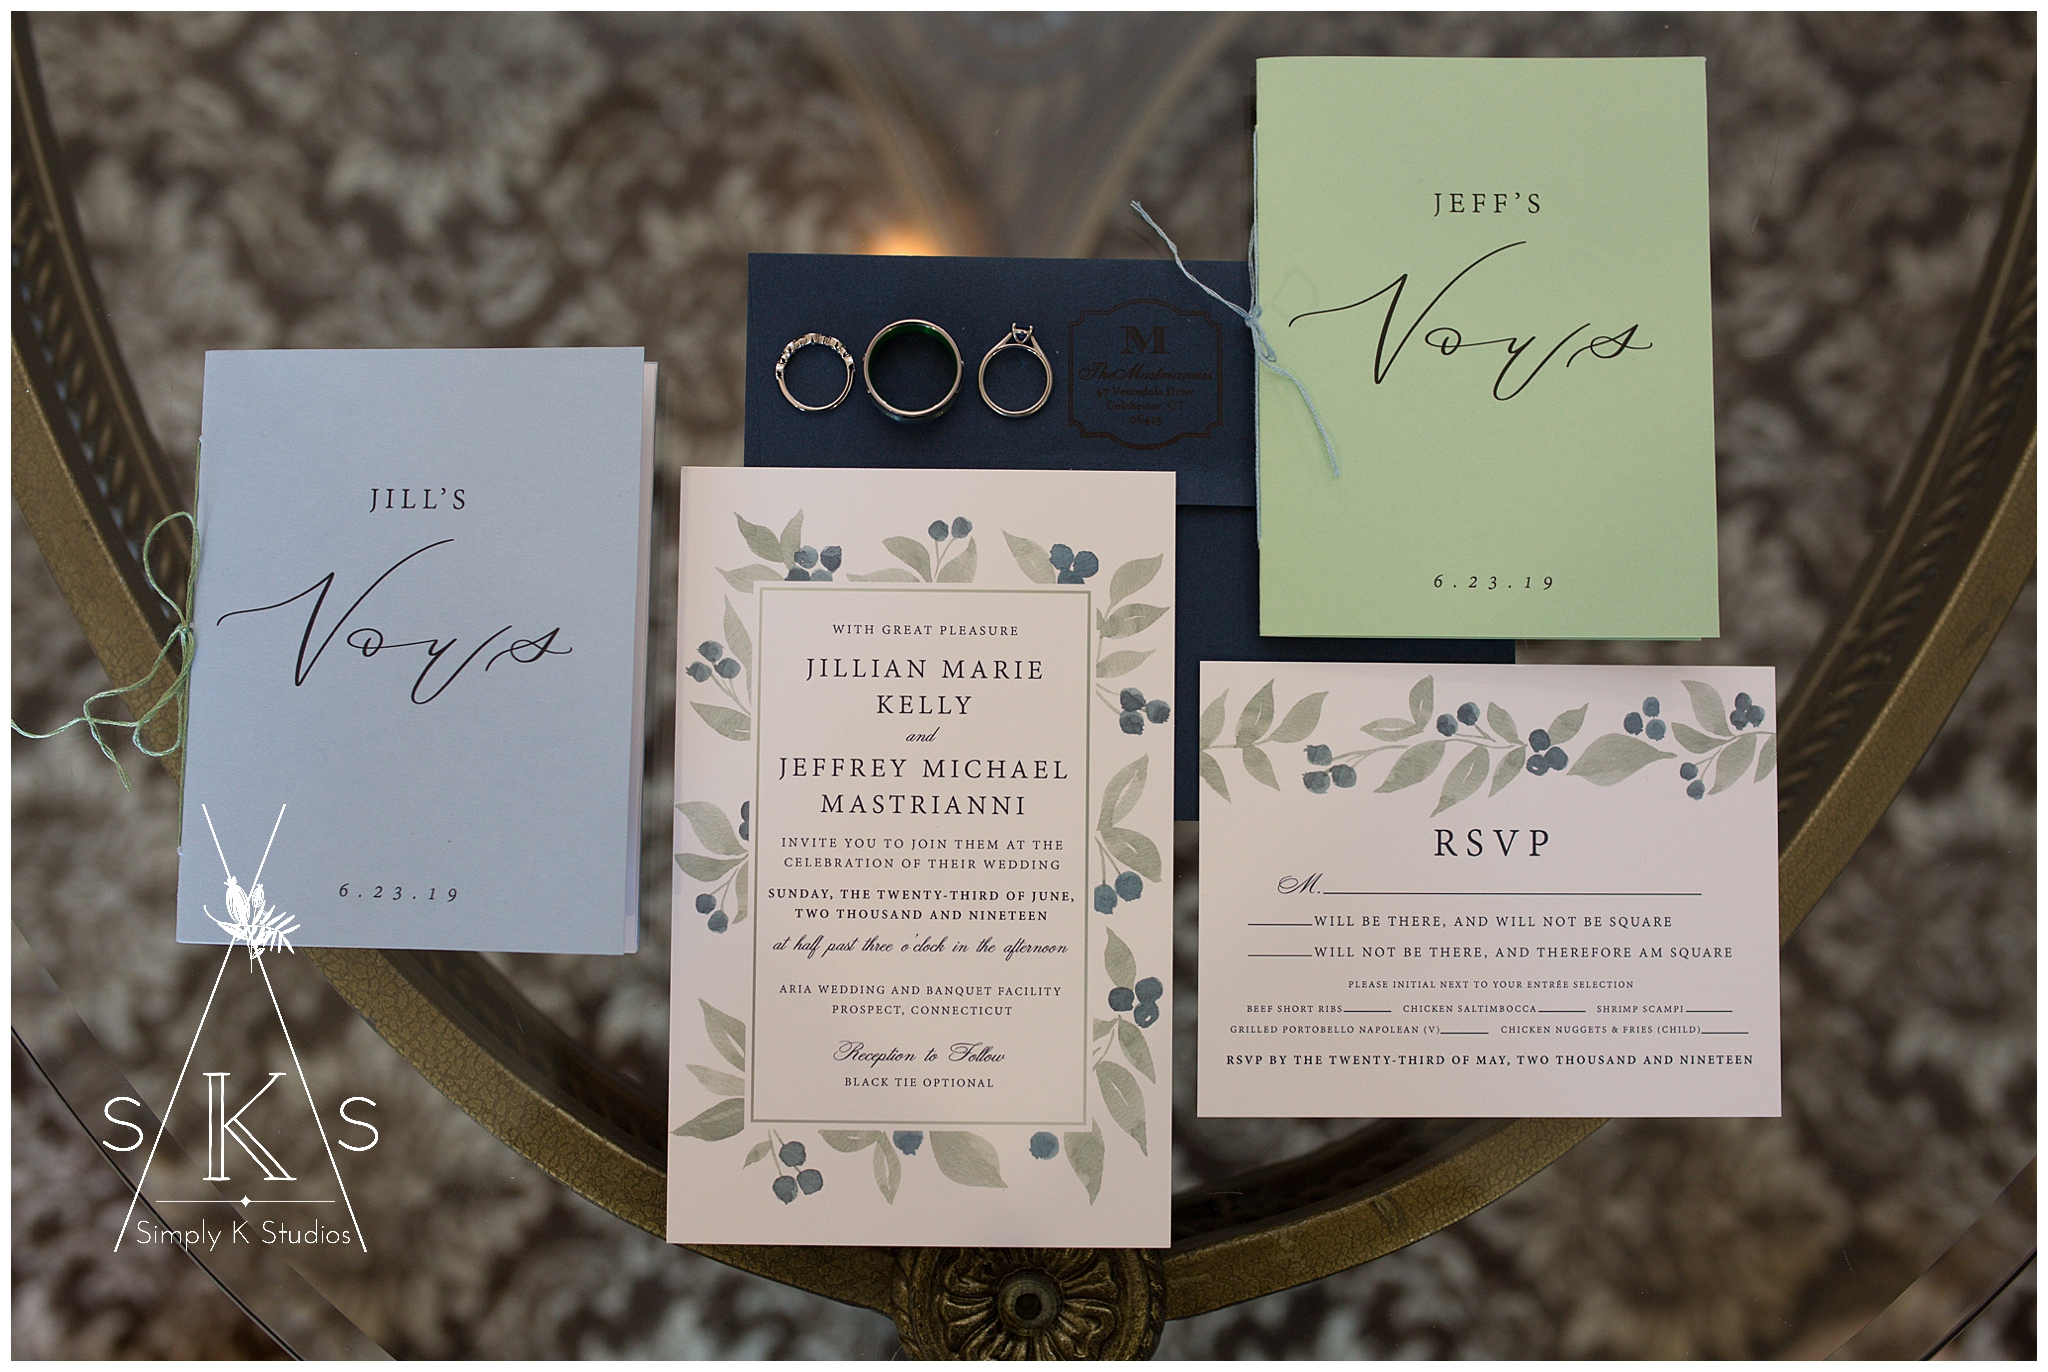 7 Wedding Vow Books.jpg